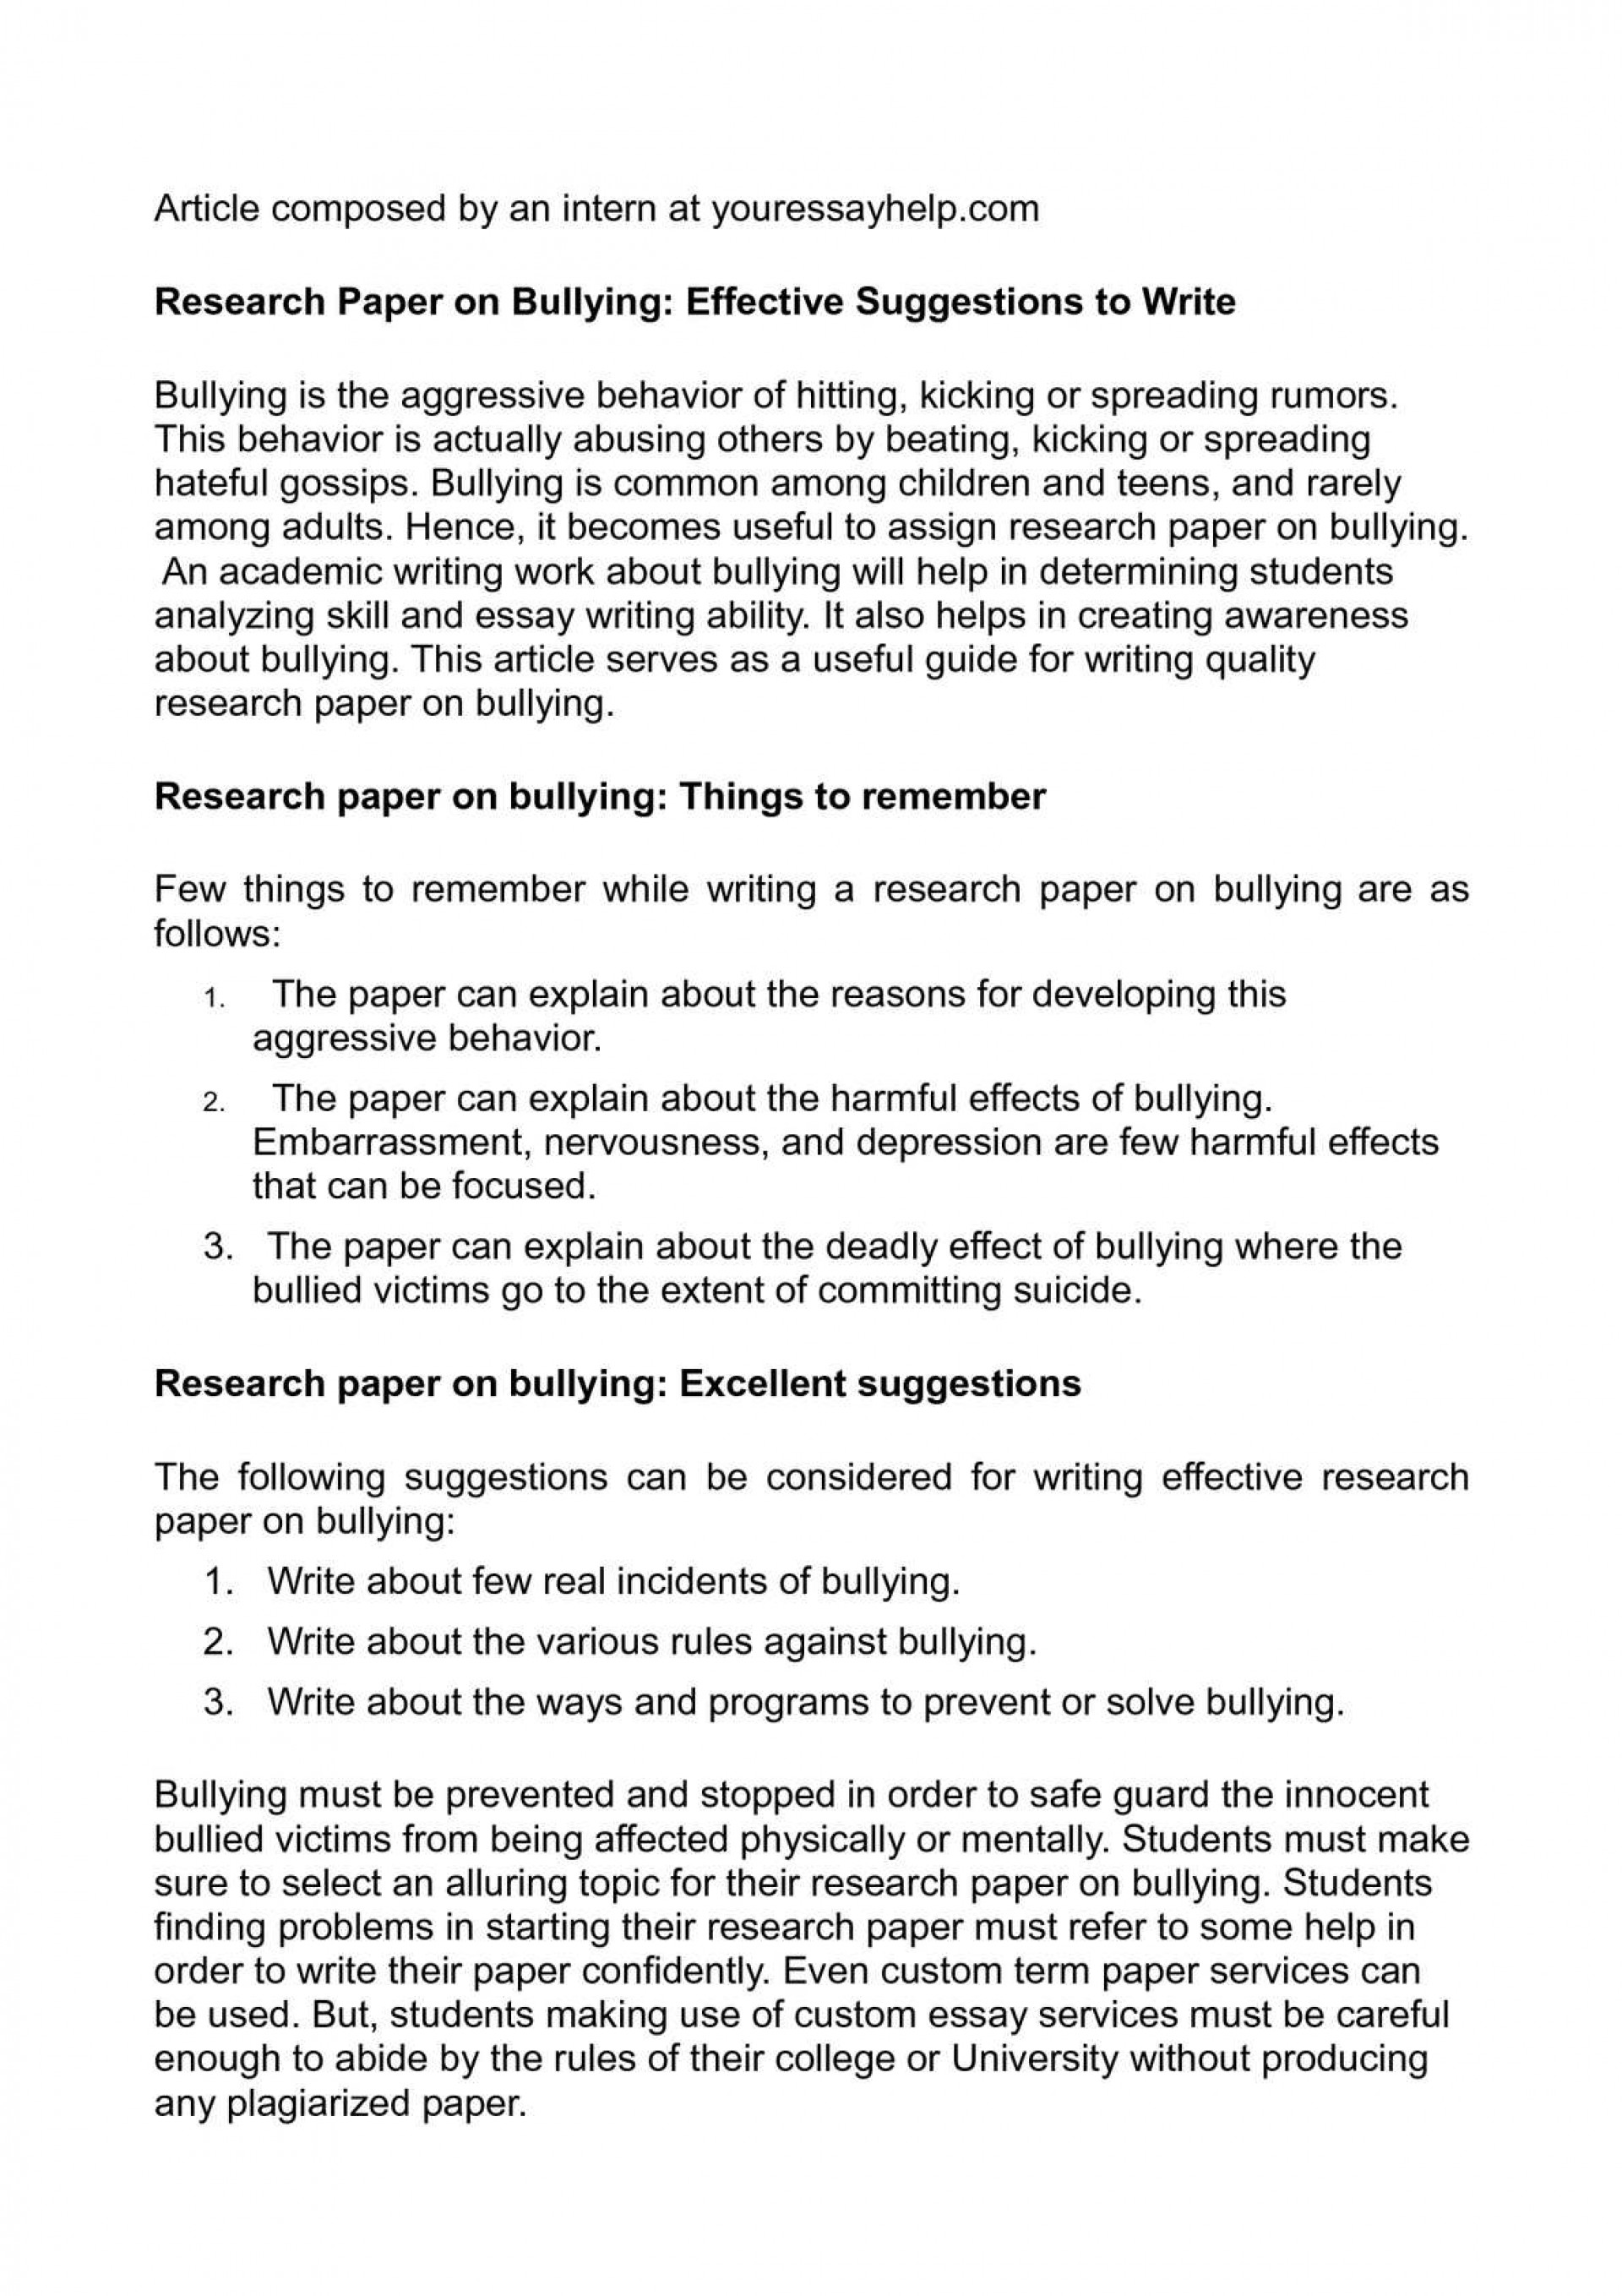 002 Researchs About Bullying P1 Stunning Research Papers Articles On Pdf Paper Cyberbullying 1920